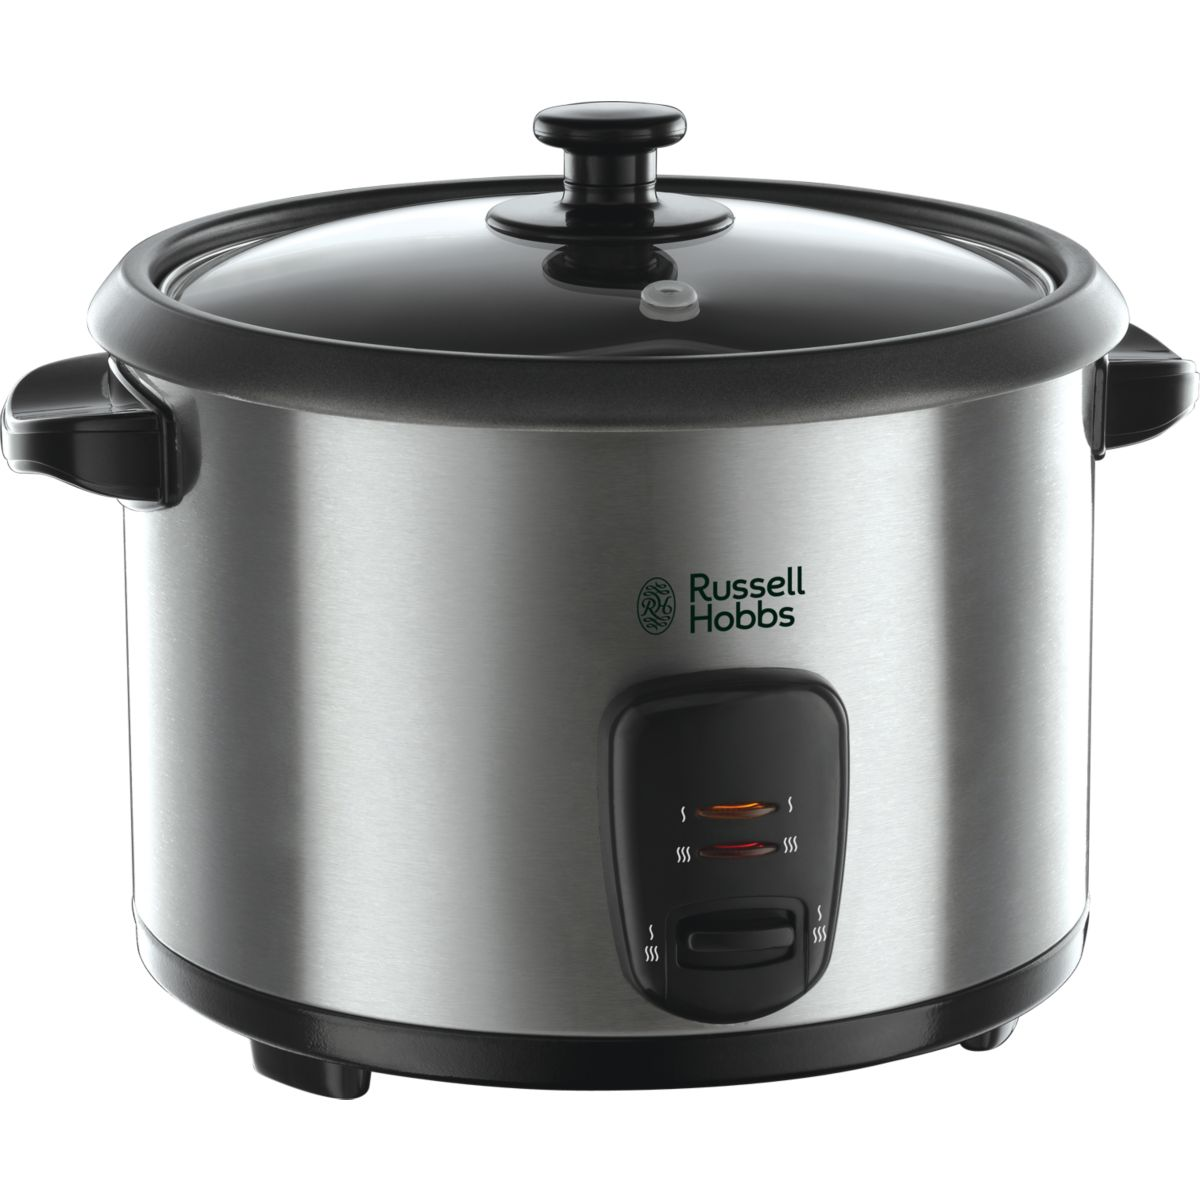 Cuiseur ? riz russell hobbs cook@home 19750-56